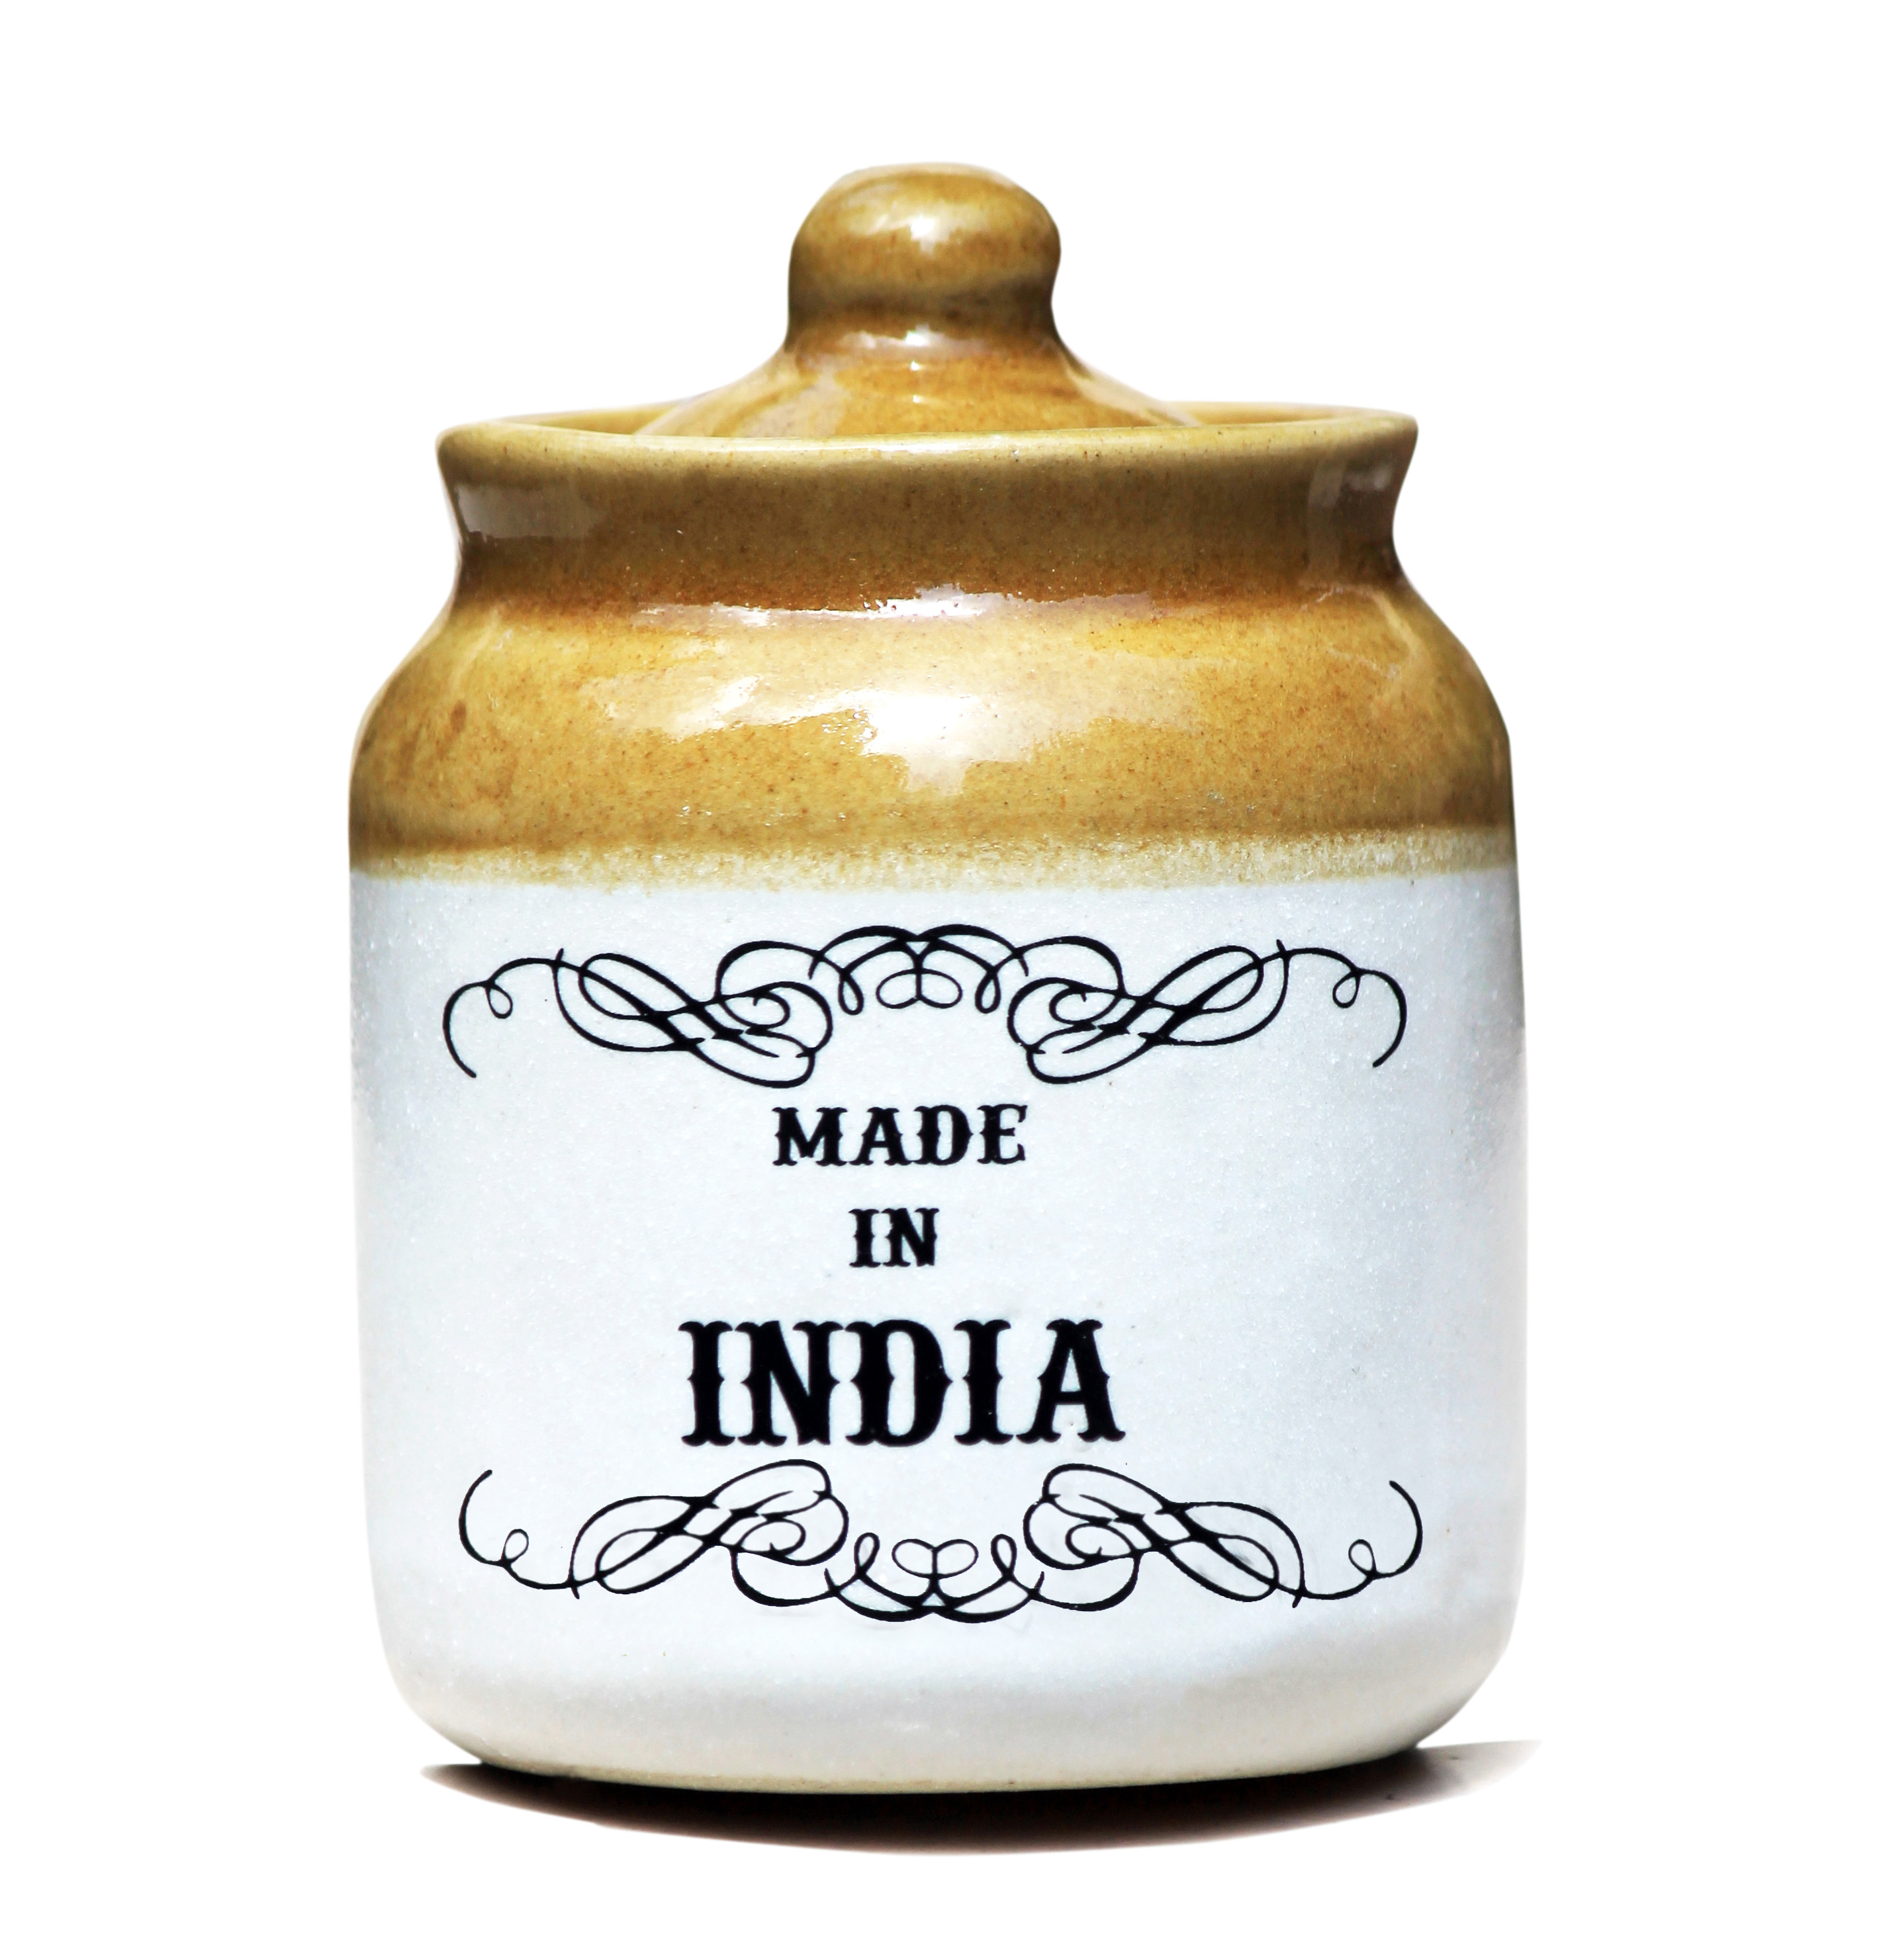 buy made in india ceramic jar at lowest price mainin23134wfk21431 kraftly. Black Bedroom Furniture Sets. Home Design Ideas